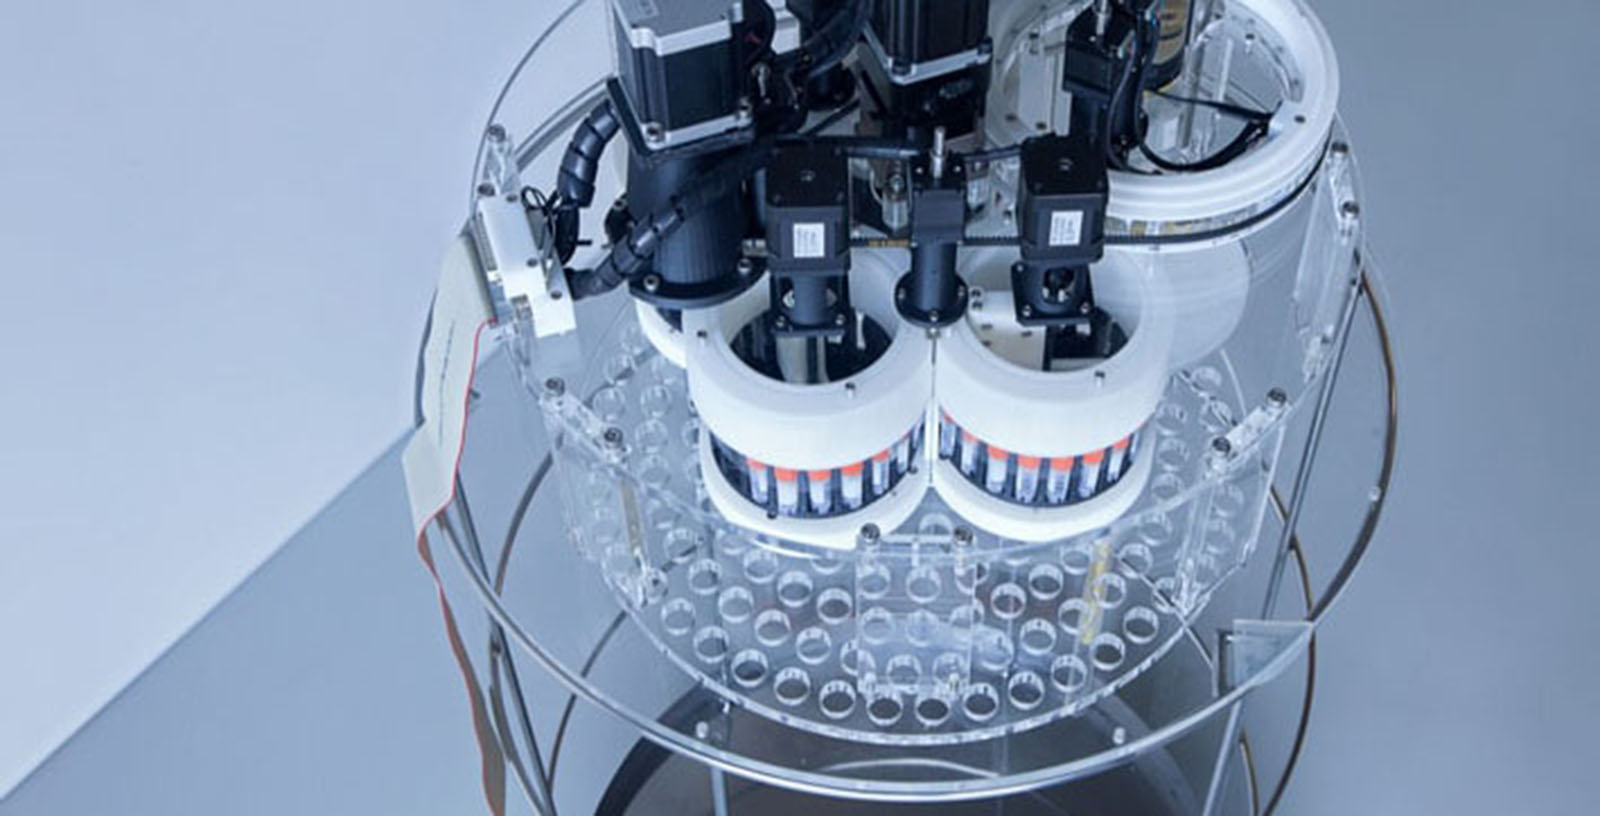 Cryopreservation_Tissue_Cell_Therapy_Bilbao_ADA_Idom__4_